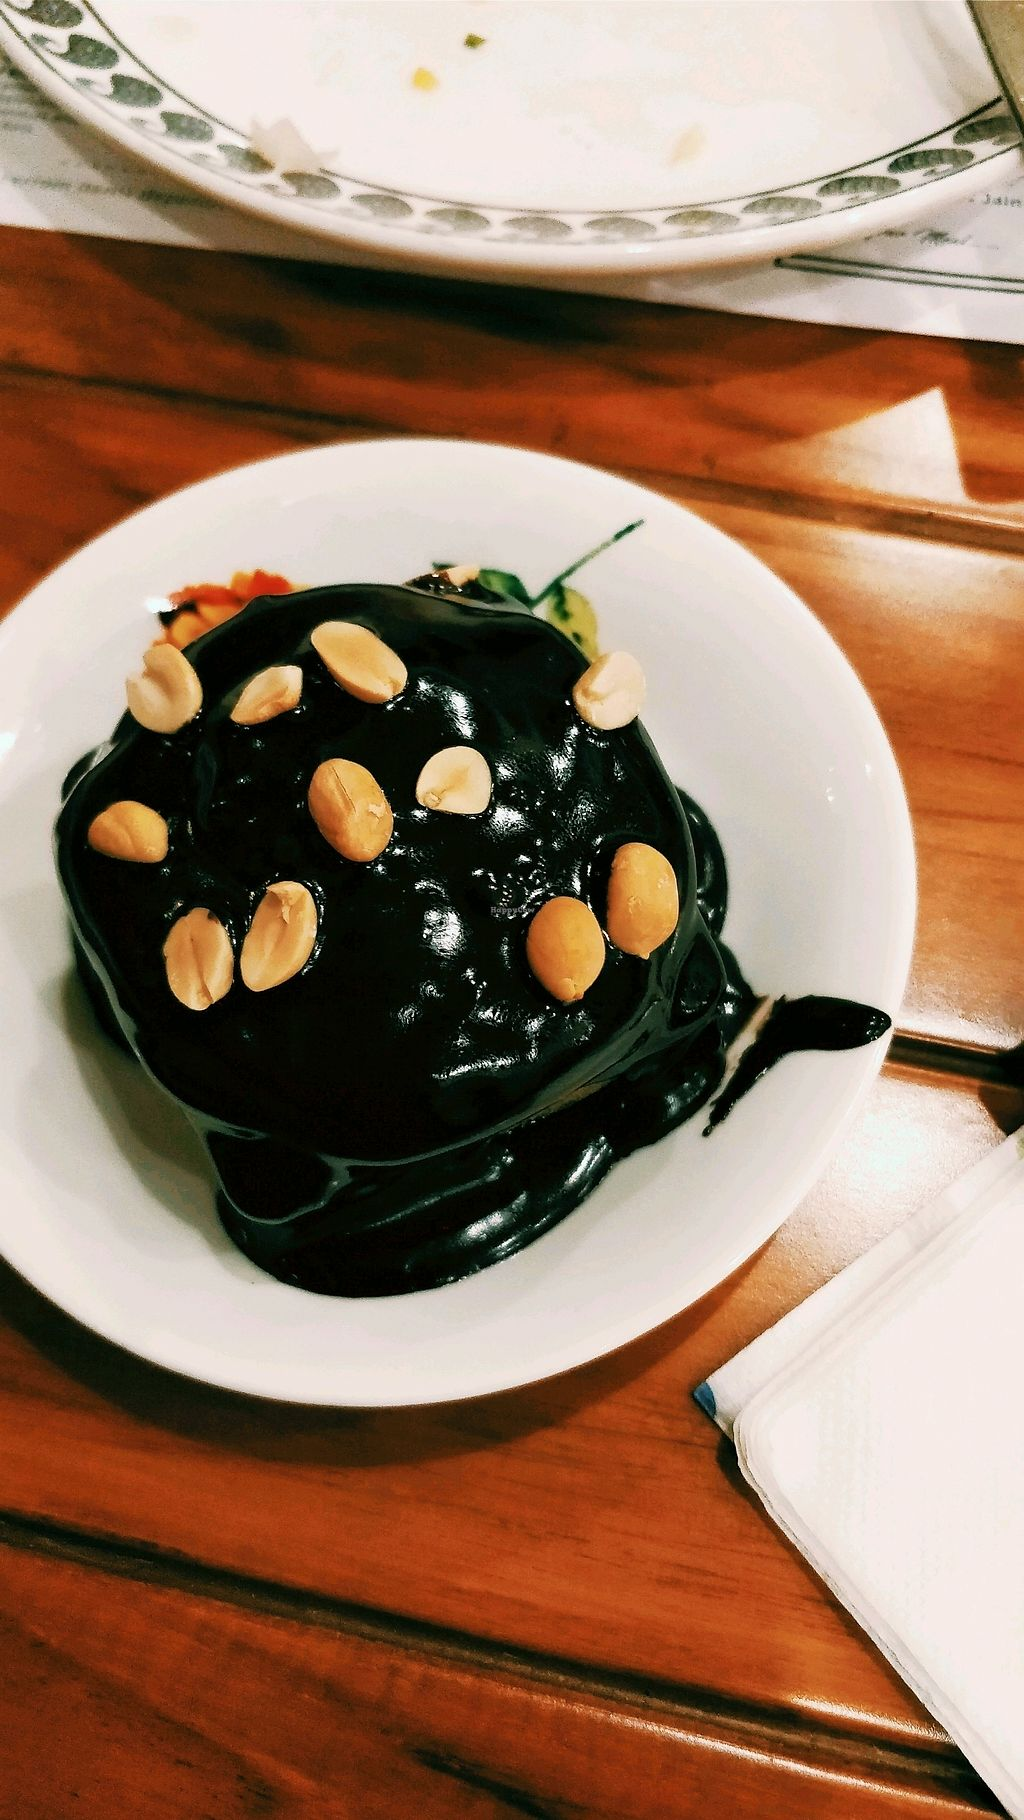 """Photo of The Philosophy Club  by <a href=""""/members/profile/bhupesh100"""">bhupesh100</a> <br/>Banana and peanut cake topped with dark hot chocolate sauce <br/> February 10, 2018  - <a href='/contact/abuse/image/43130/357287'>Report</a>"""